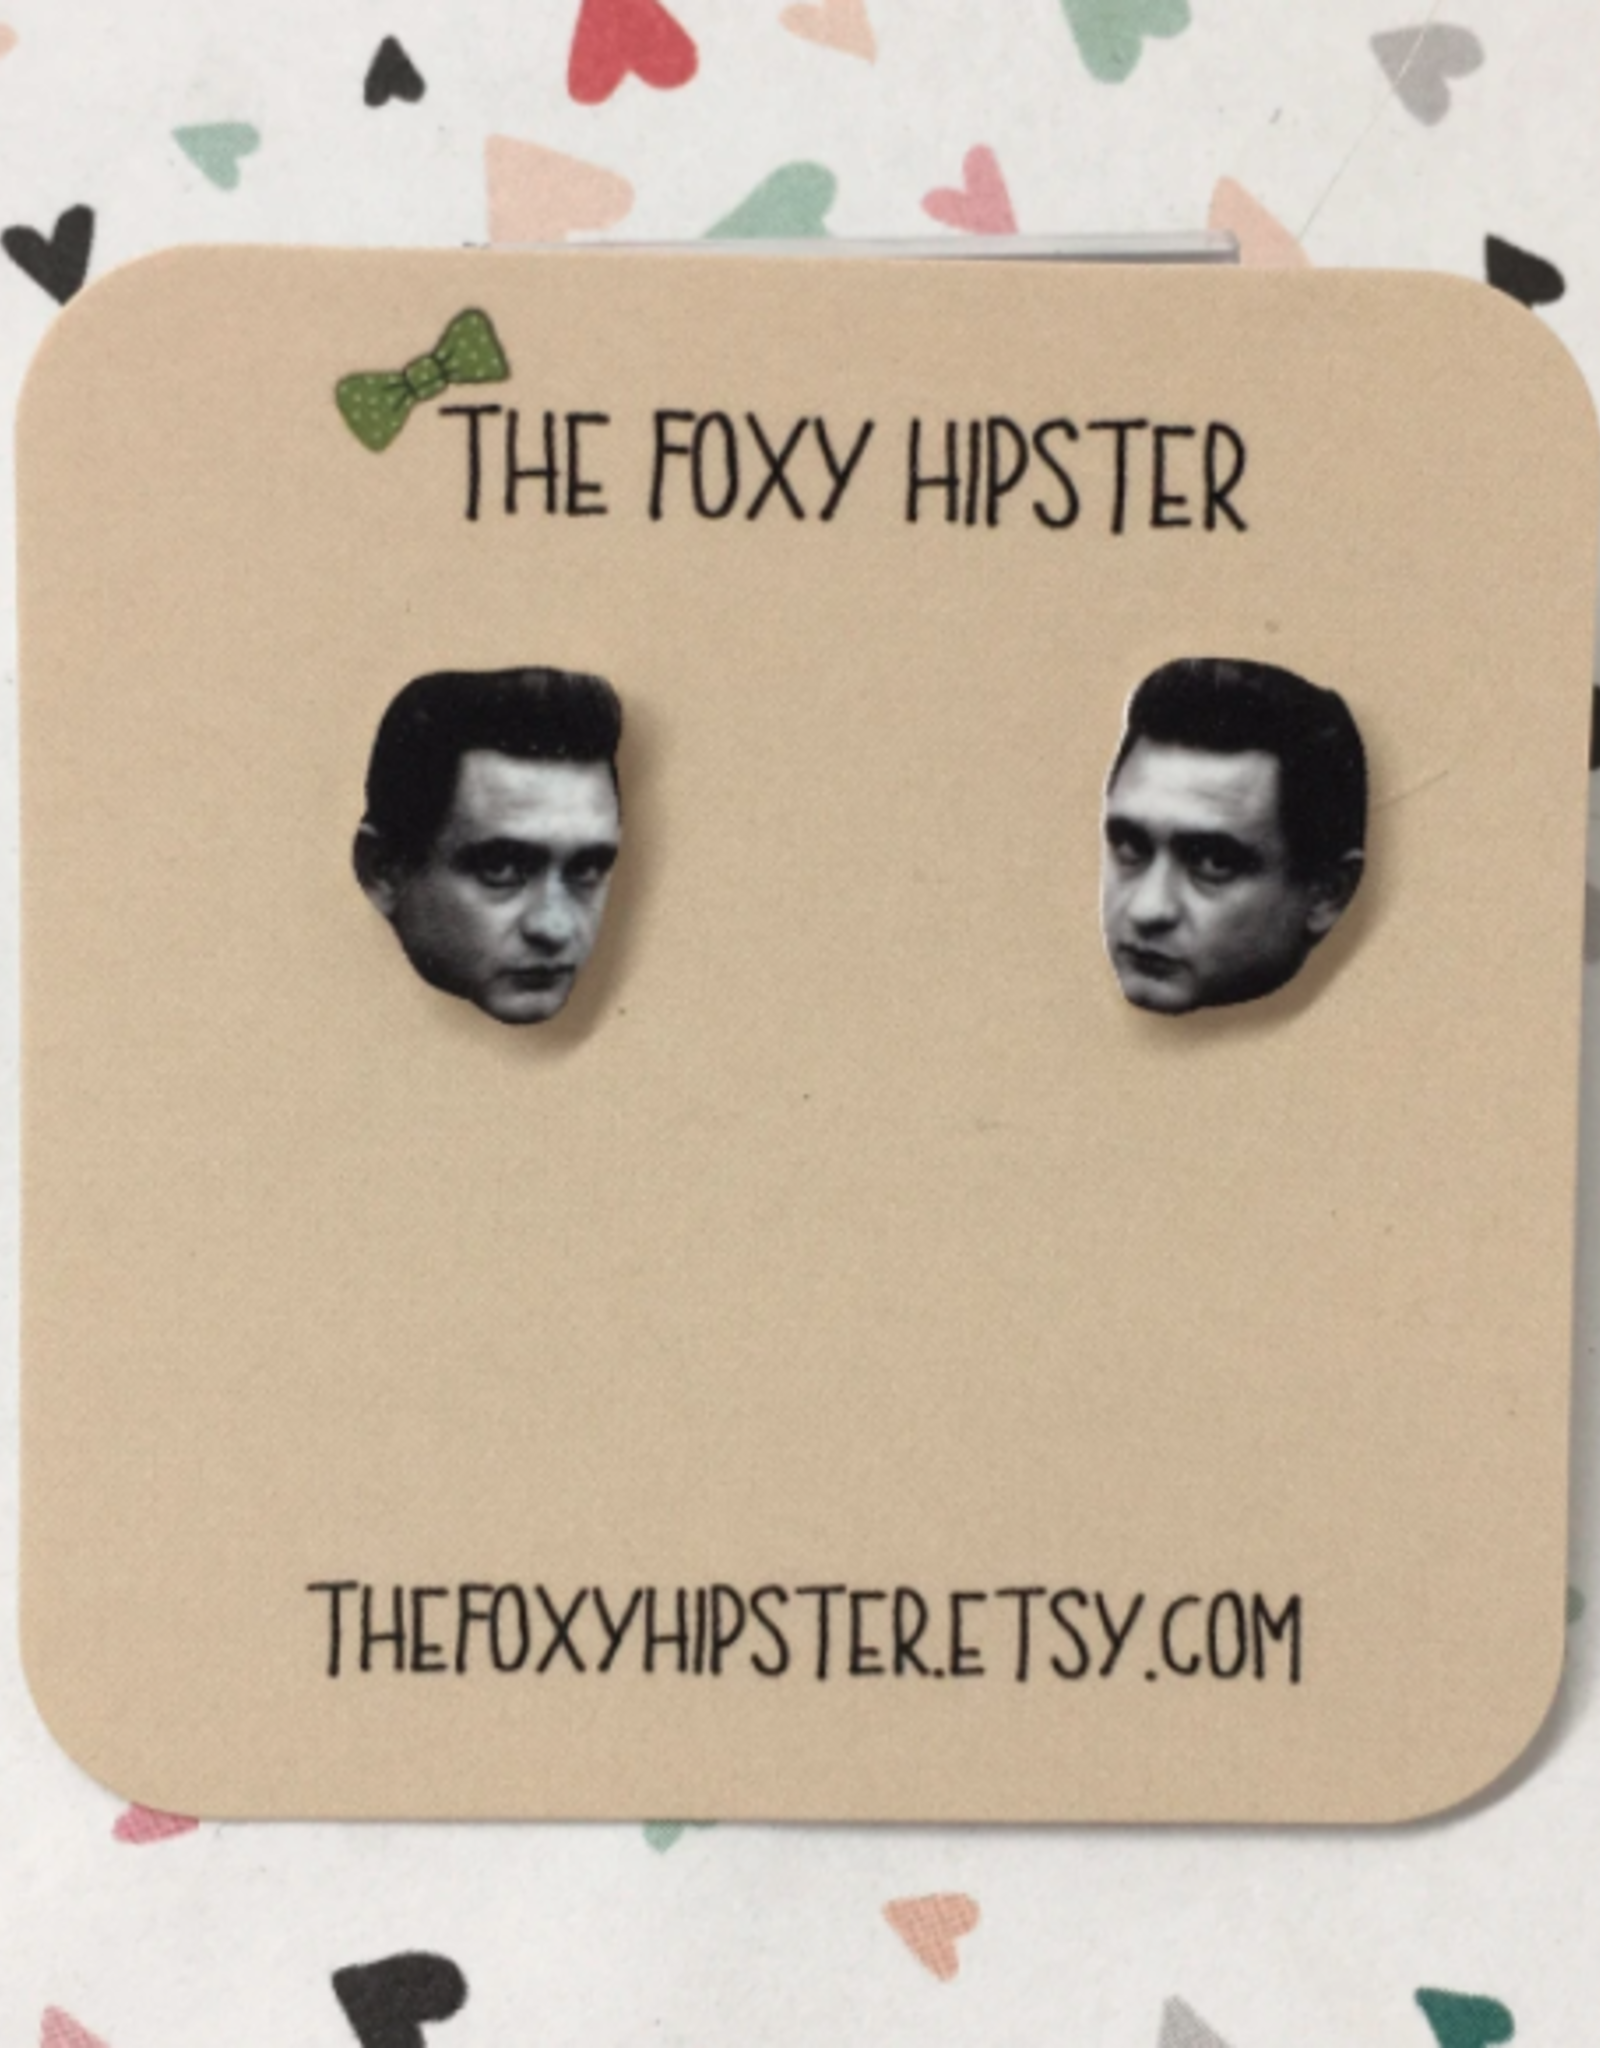 The Foxy Hipster Johnny Cash Shrinky Dink Post Earrings - The Foxy Hipster